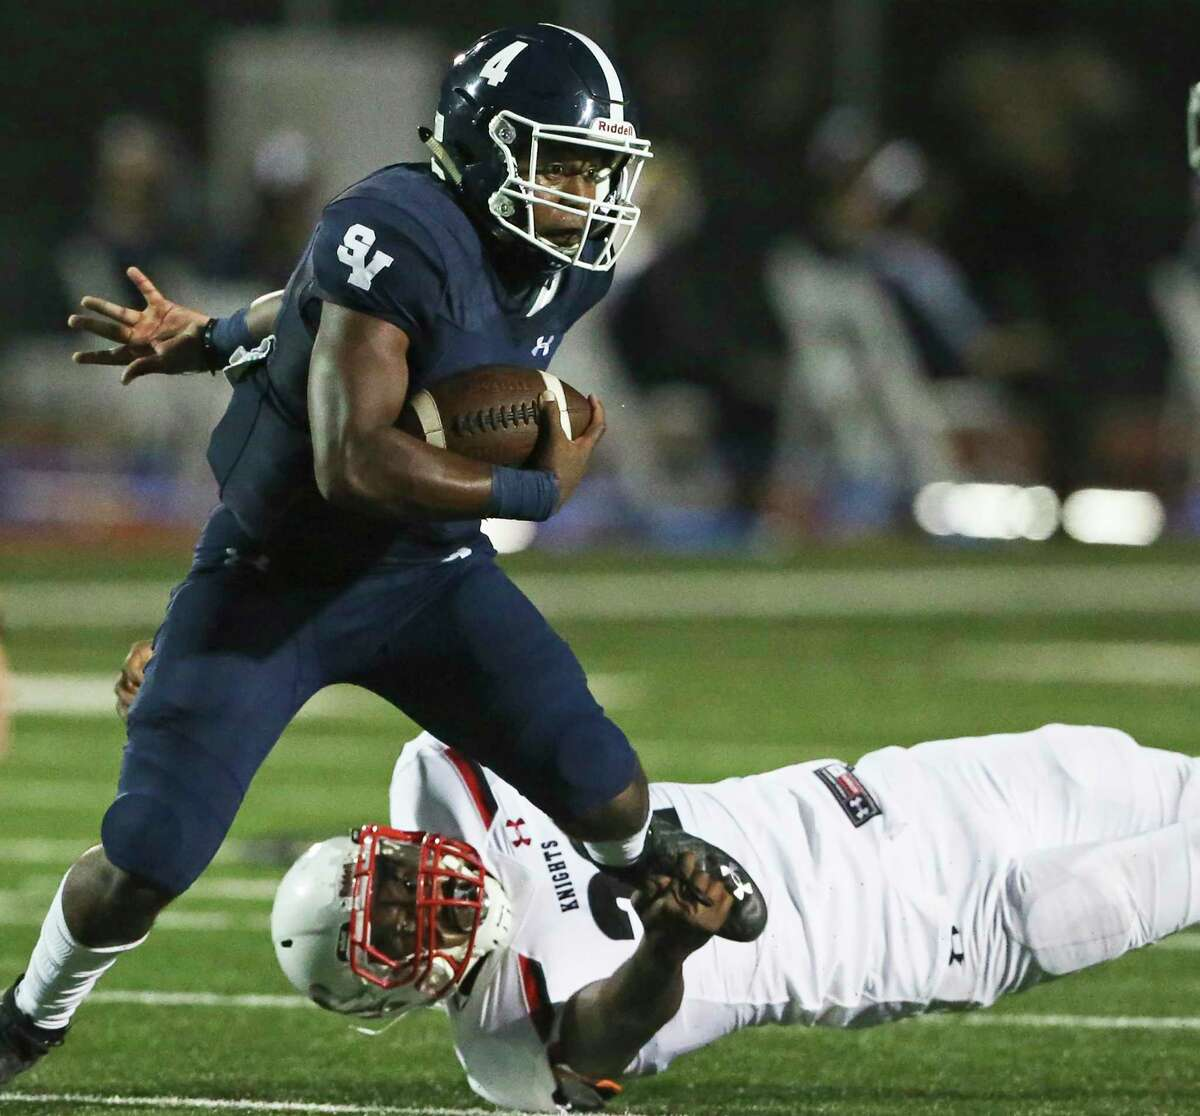 Smithson Valley's Jalen Nutt eludes a tackler en route to 78 rushing yards and a TD. He also passed for 125 yards and a TD.